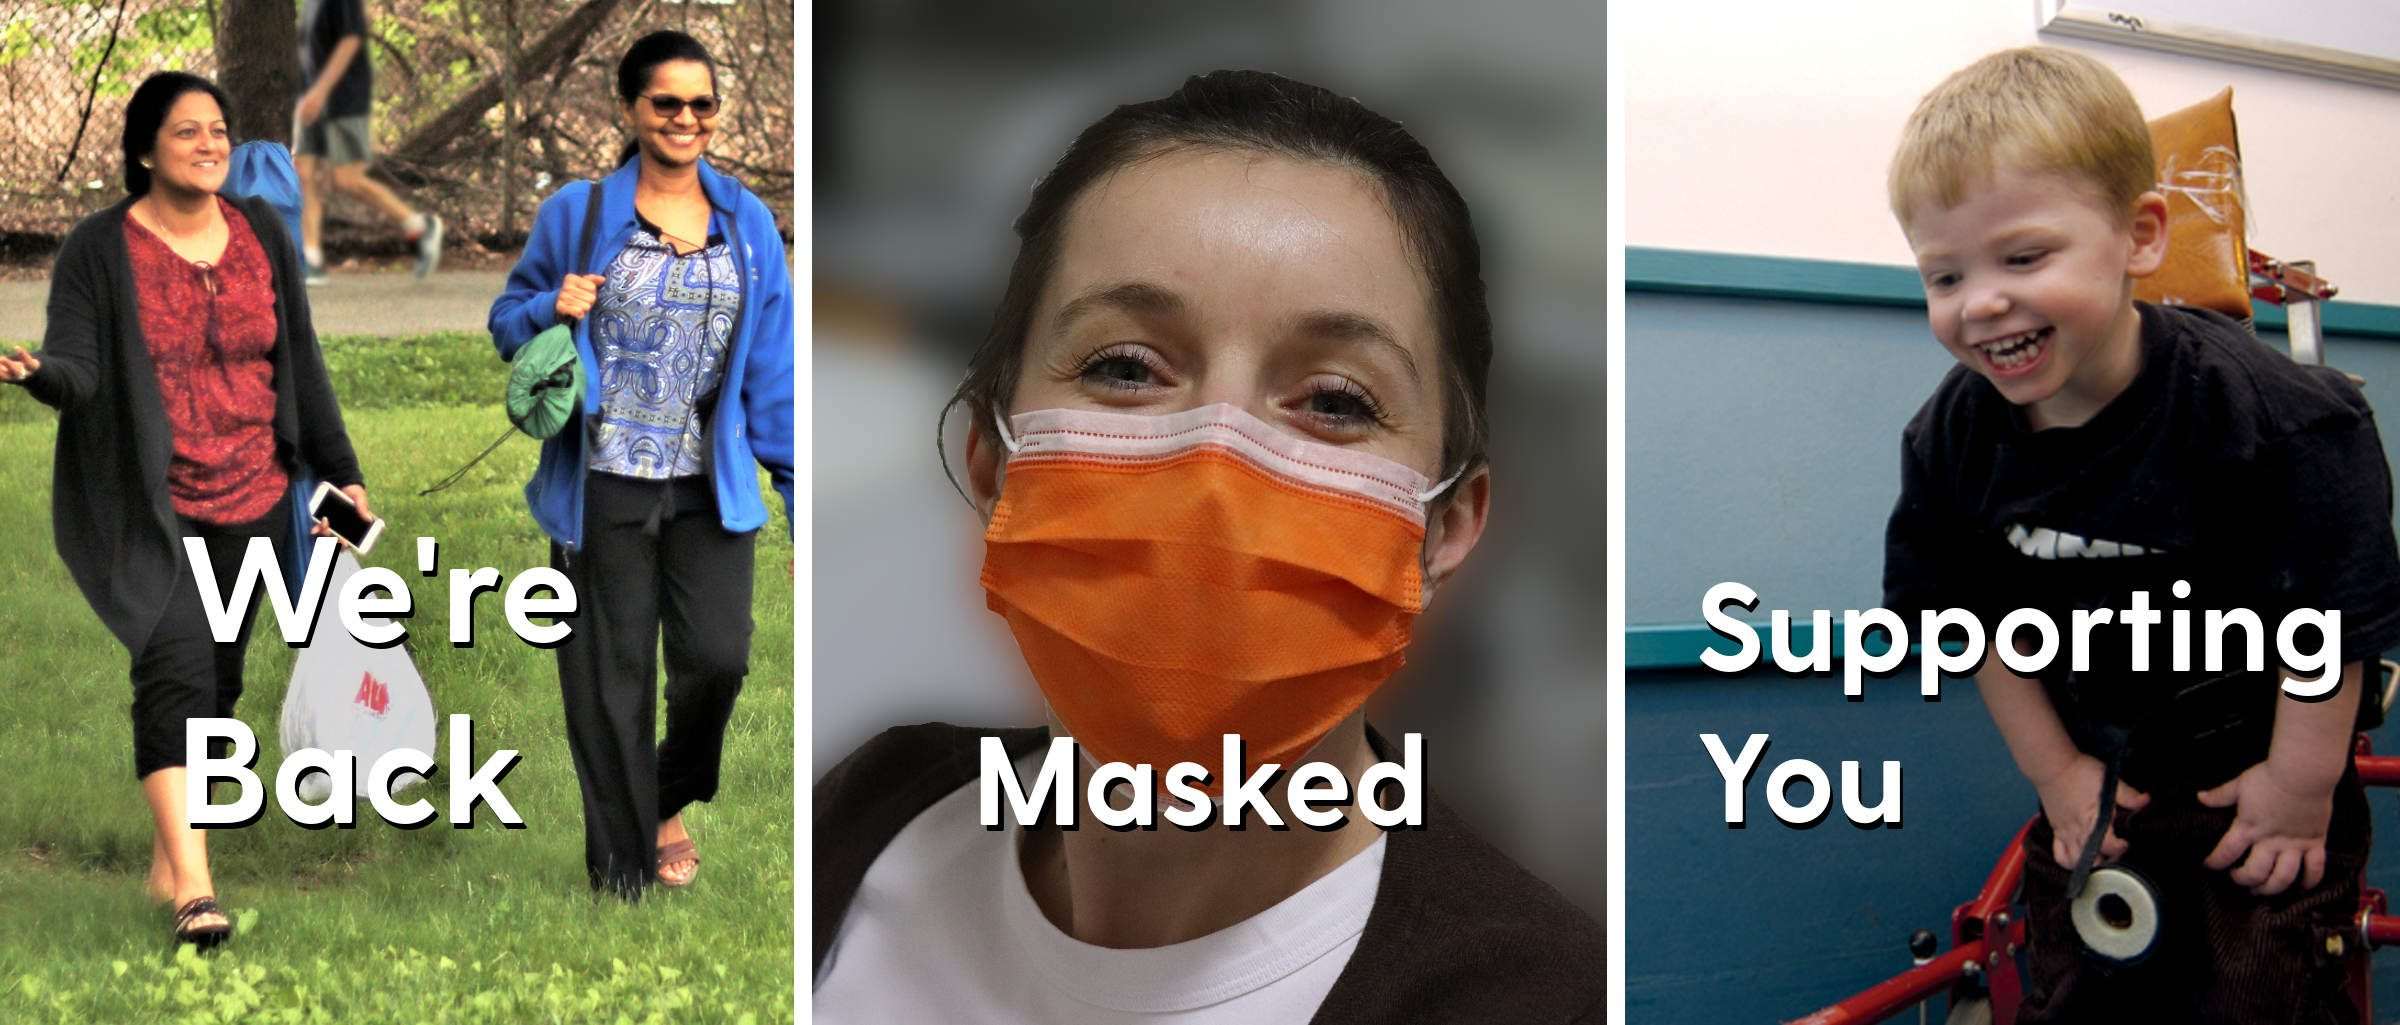 We're back; masked; supporting you